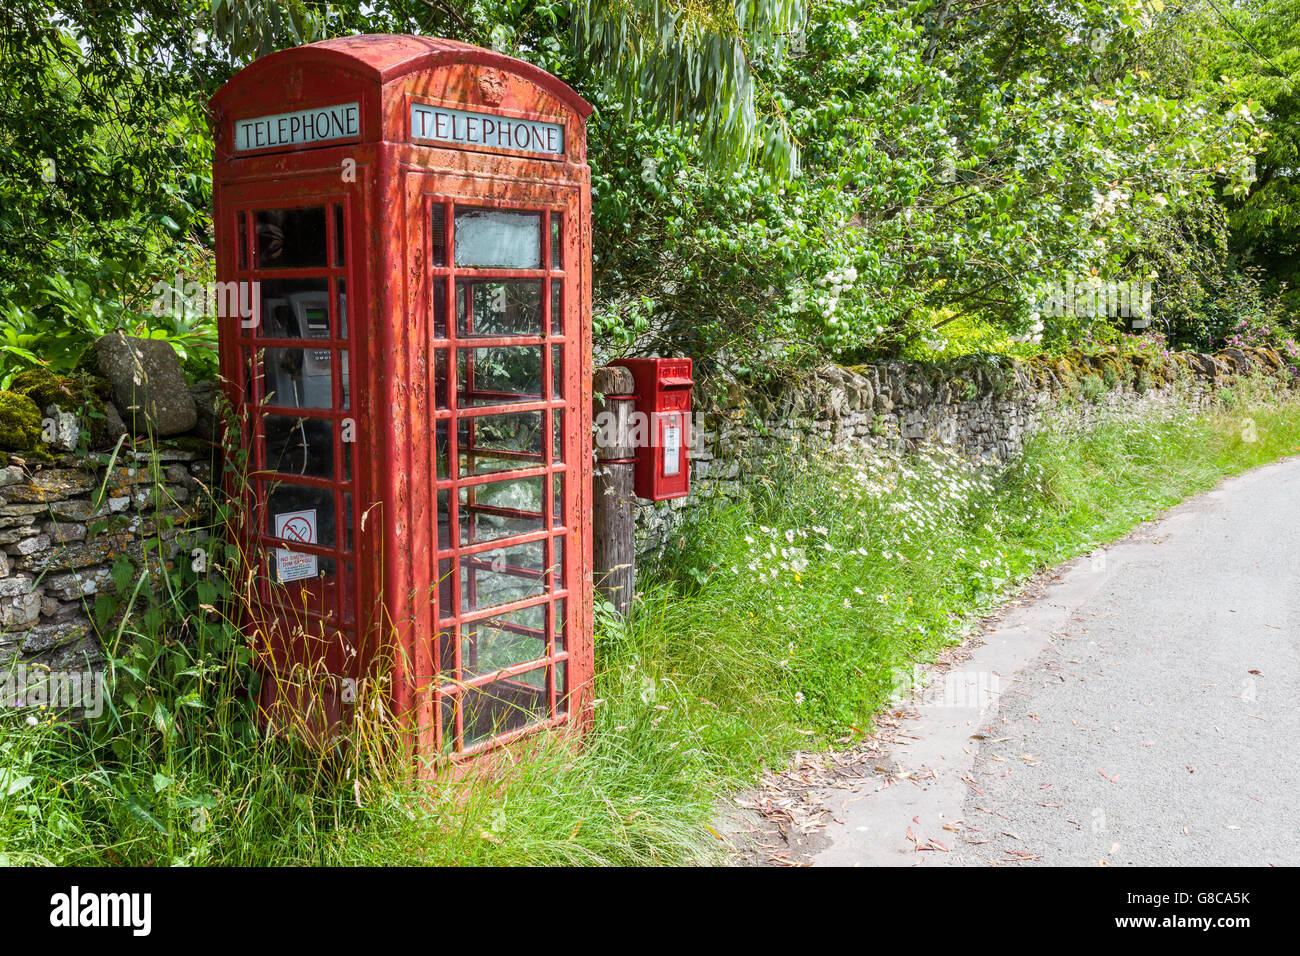 Red telephone box and red postbox in the village of Norbury, Shropshire, England, UK - Stock Image